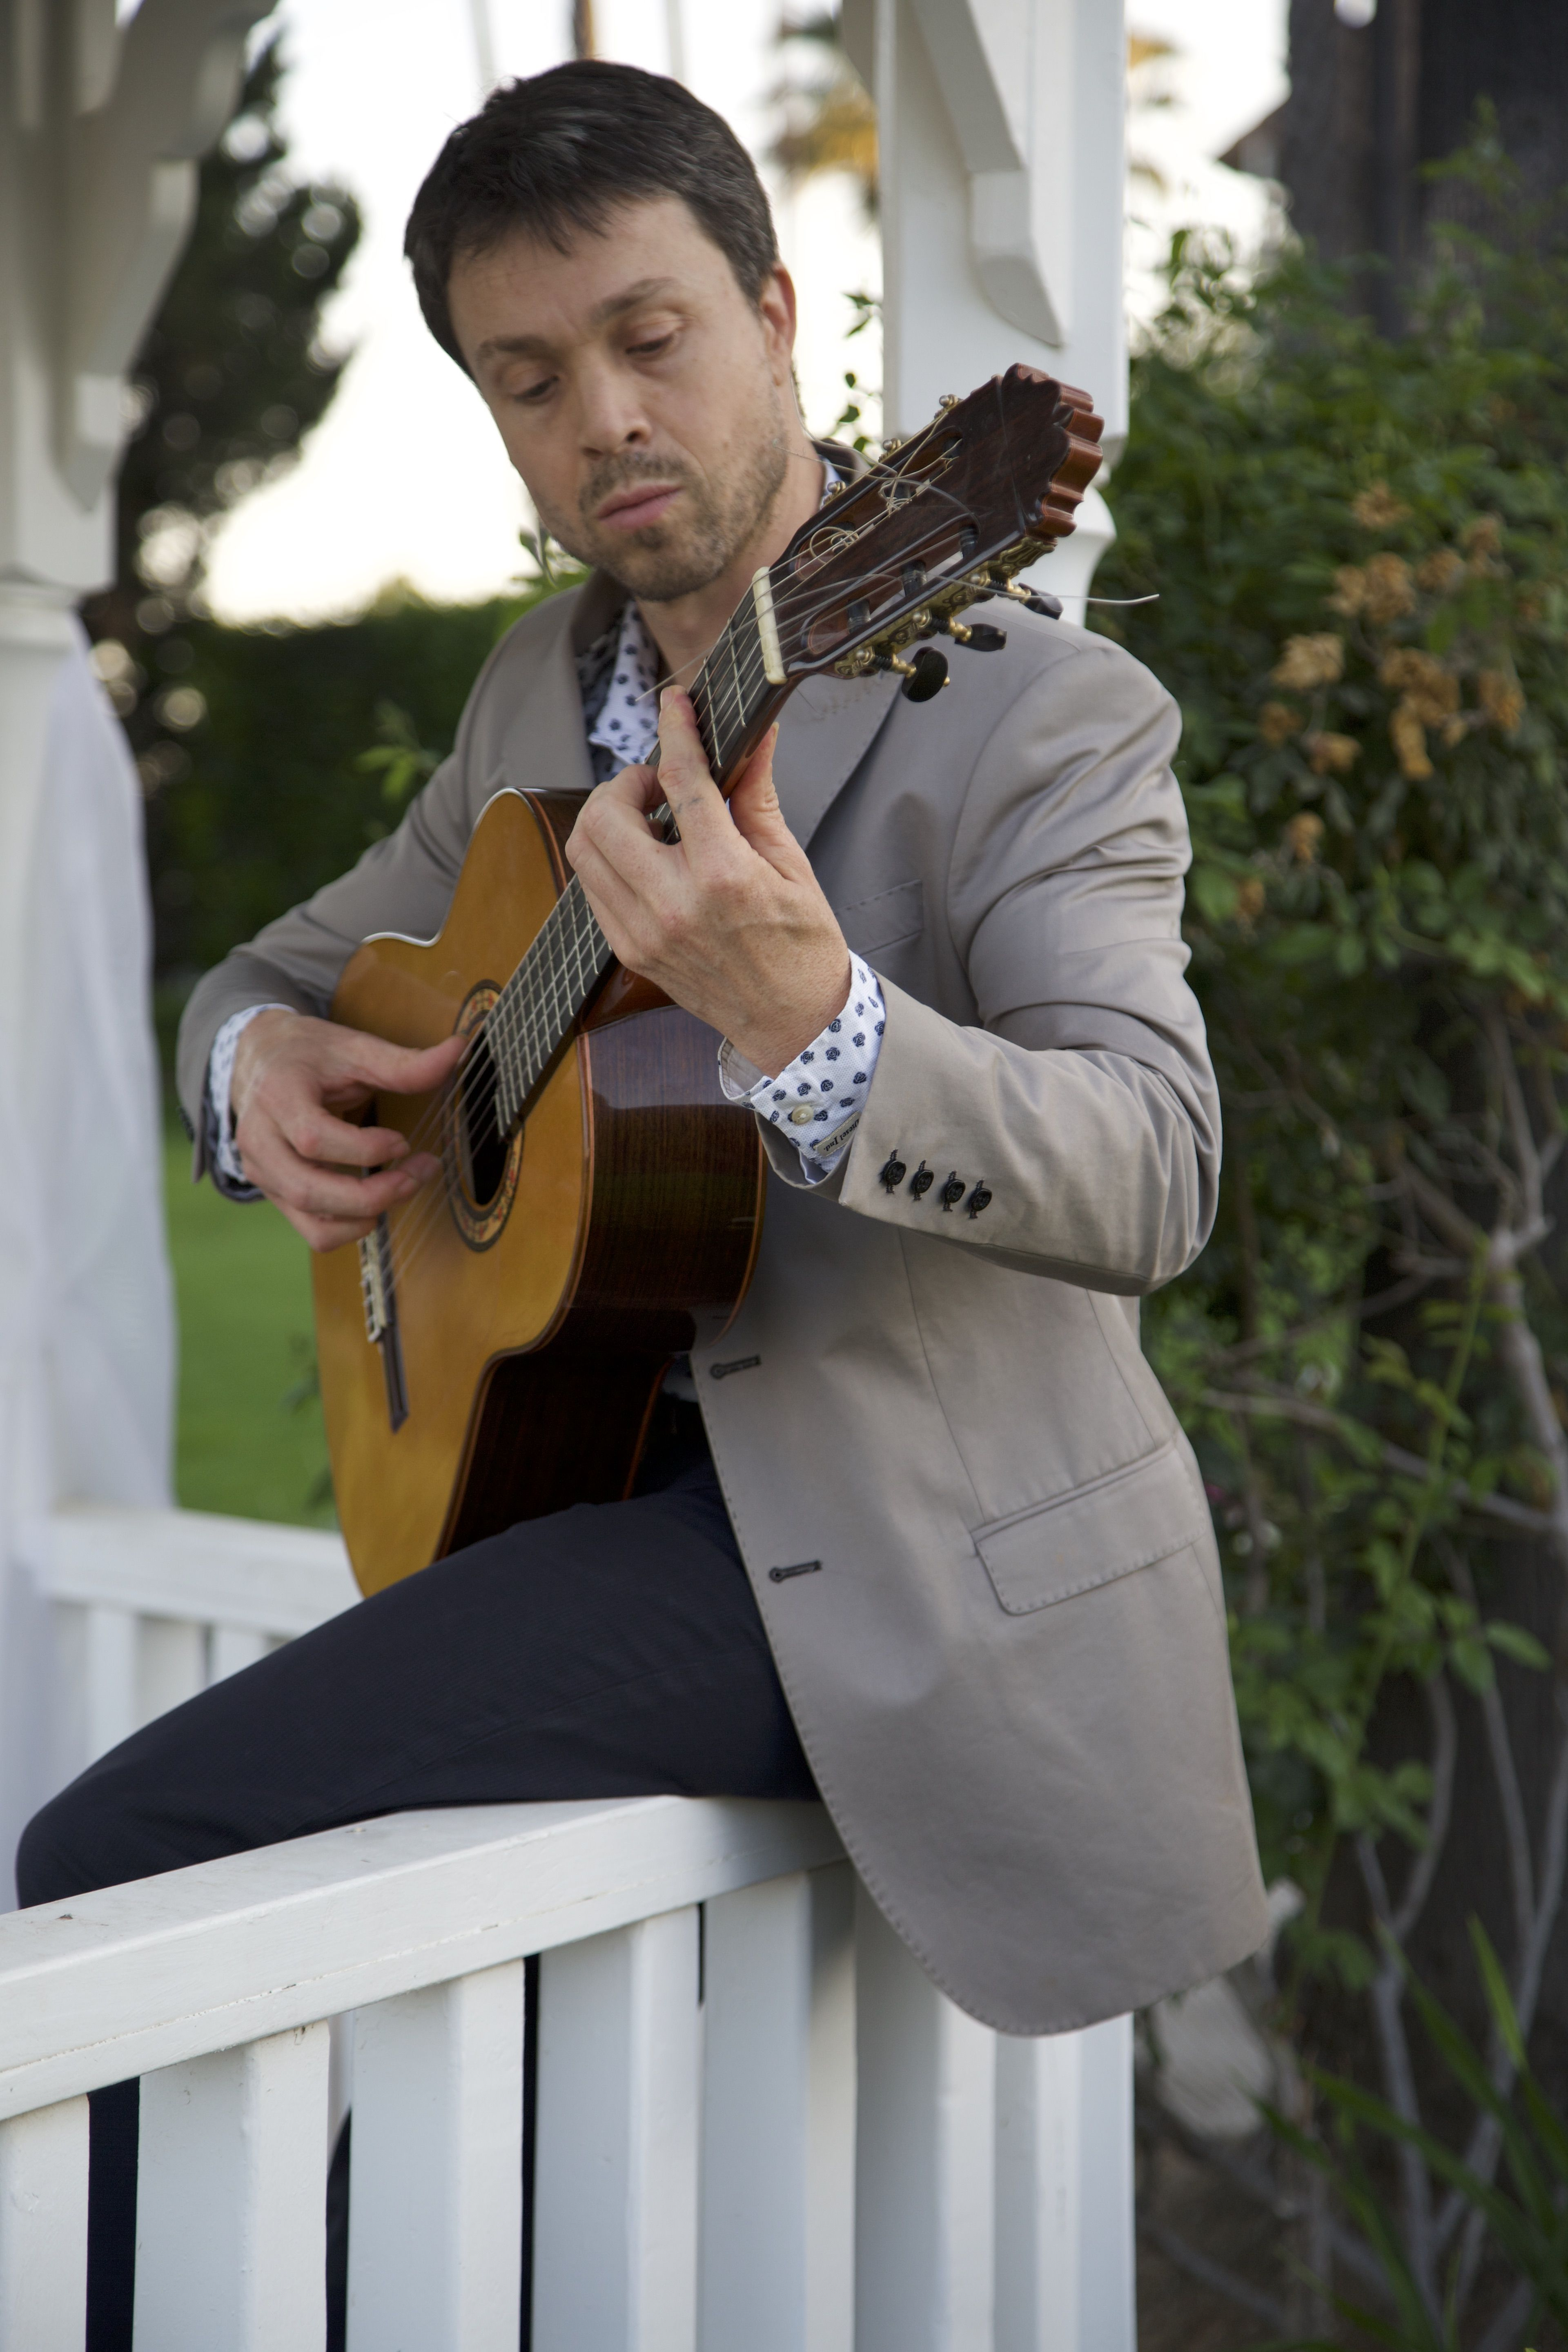 Ian Kauffman is LA acoustic and plays for restaurants and